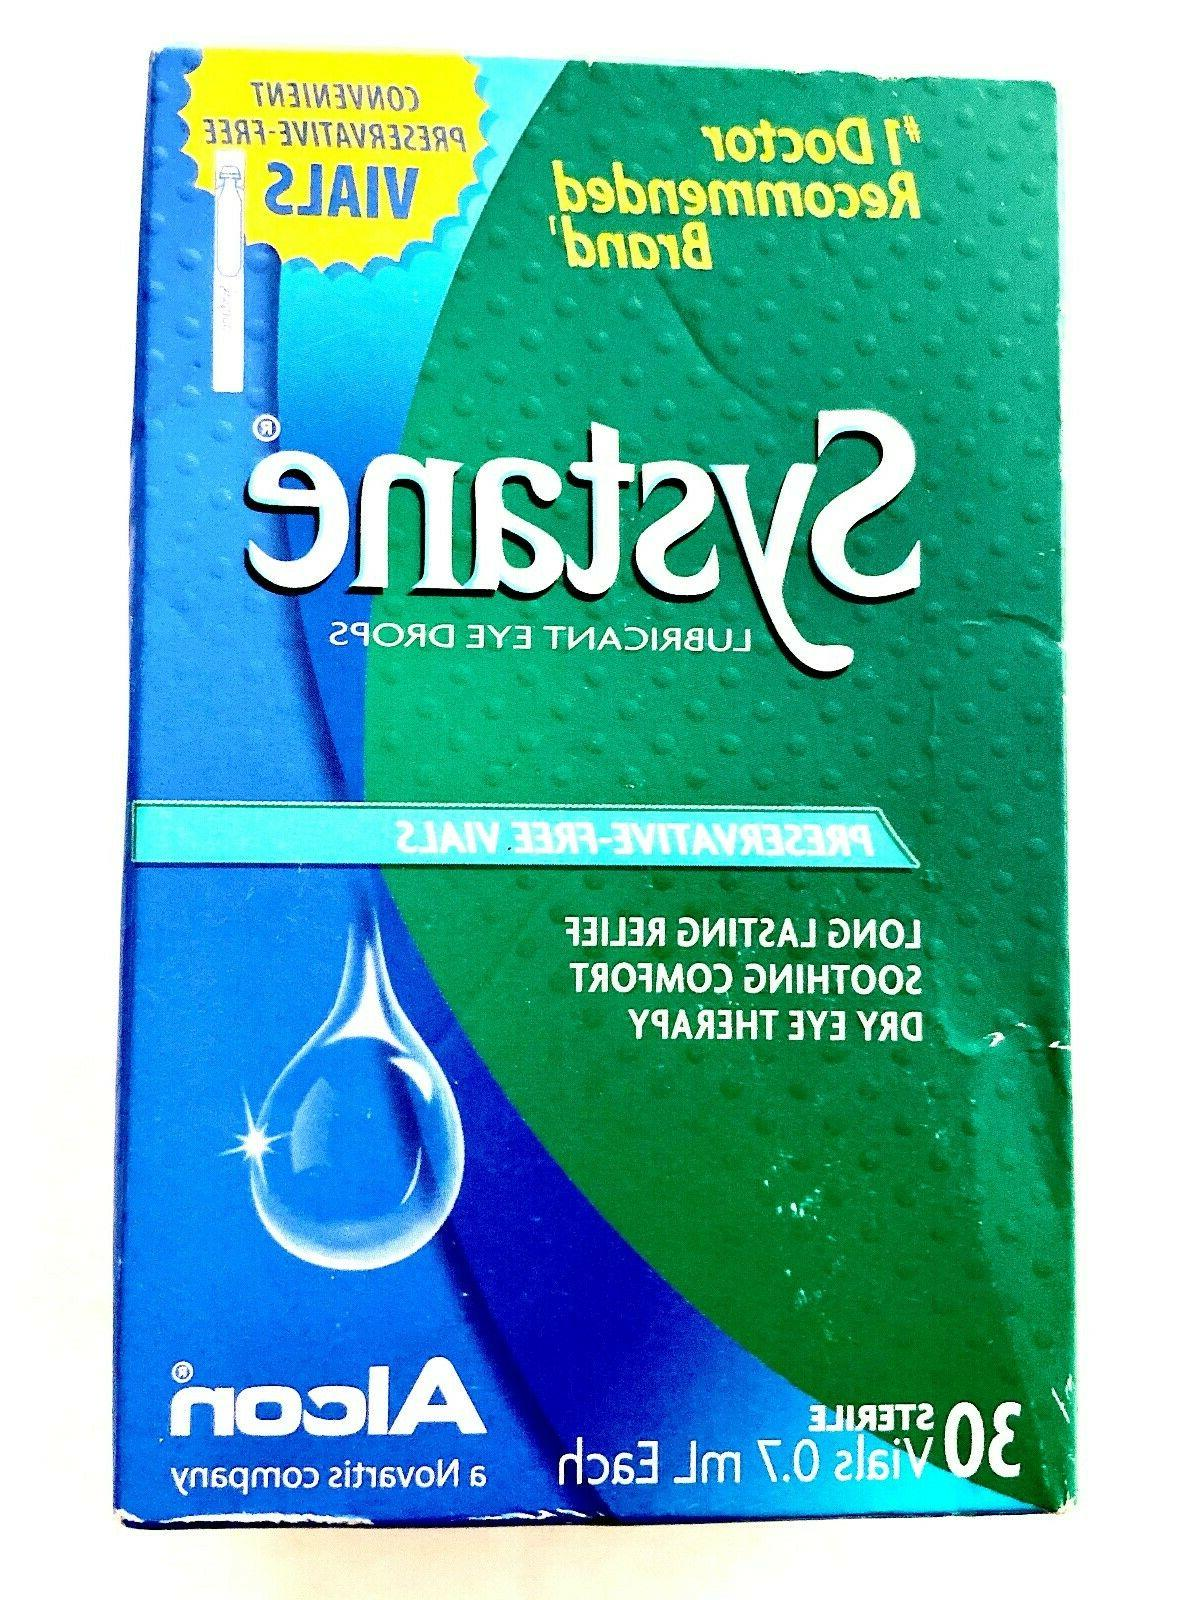 3 systane lubricant drops preservative